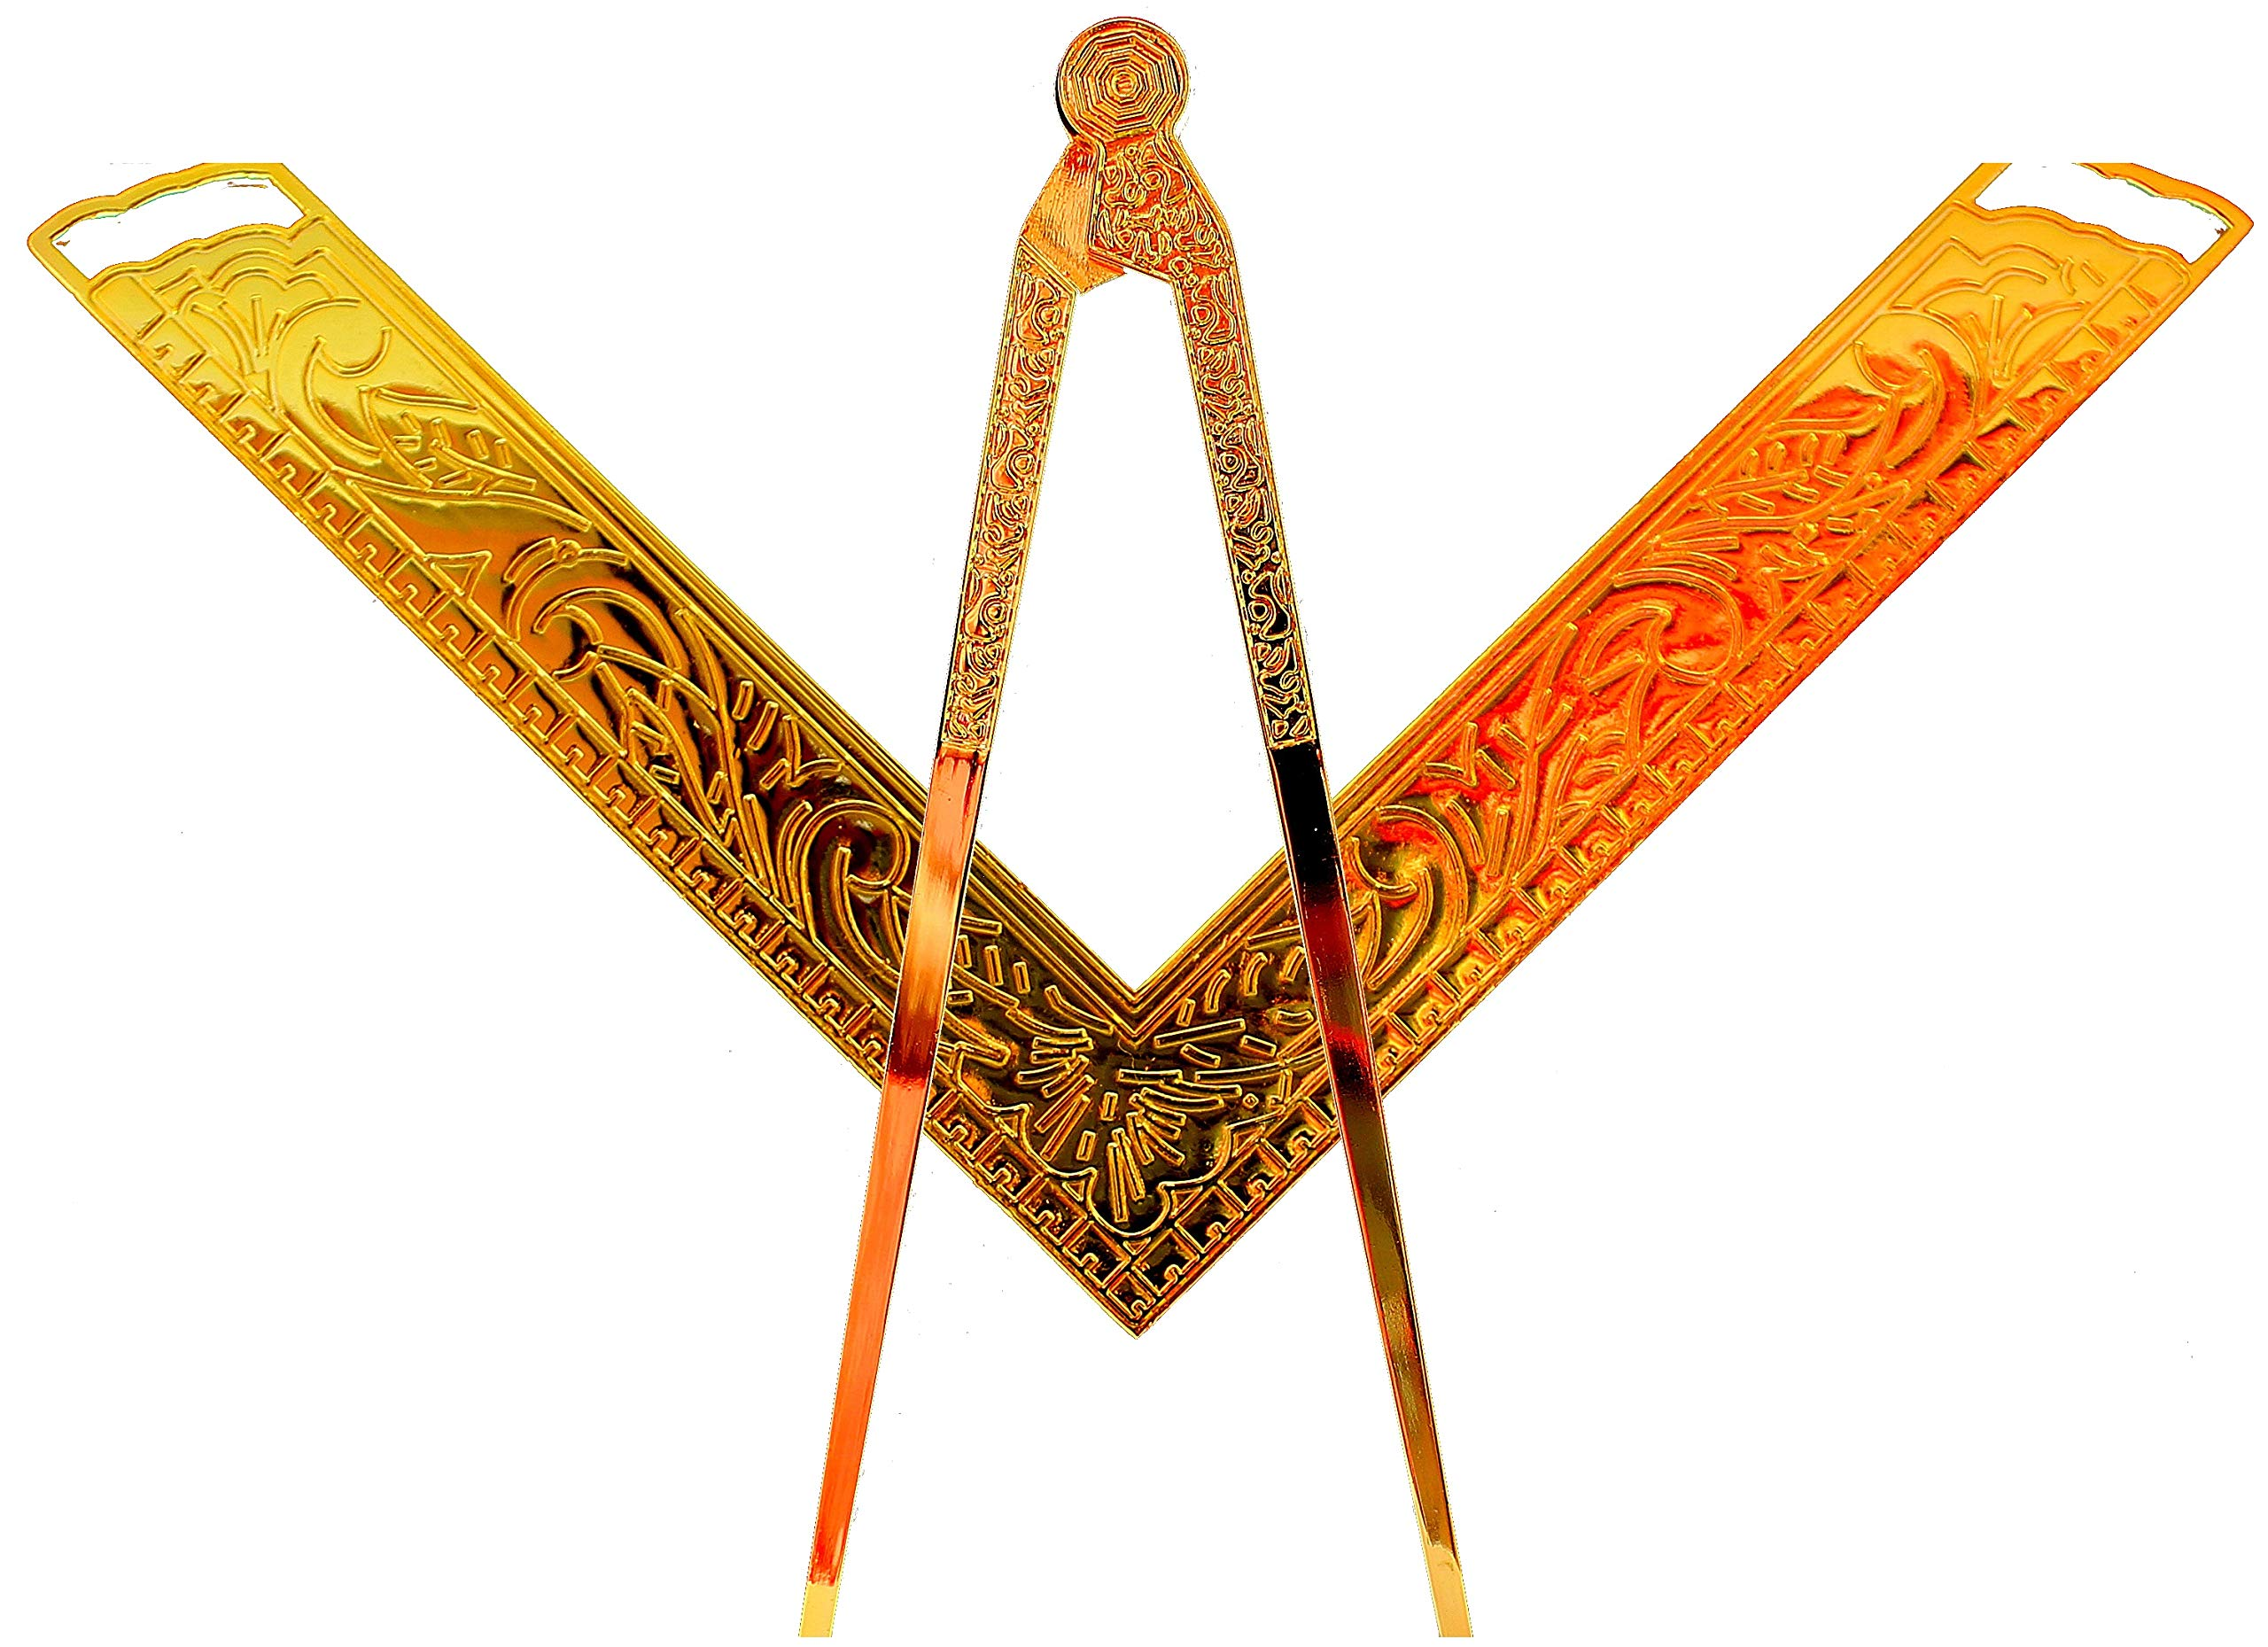 DEURA Masonic Lodge Ceremonial 6'' INCH Large Freemason Square & Compass for Bible Gold Plated